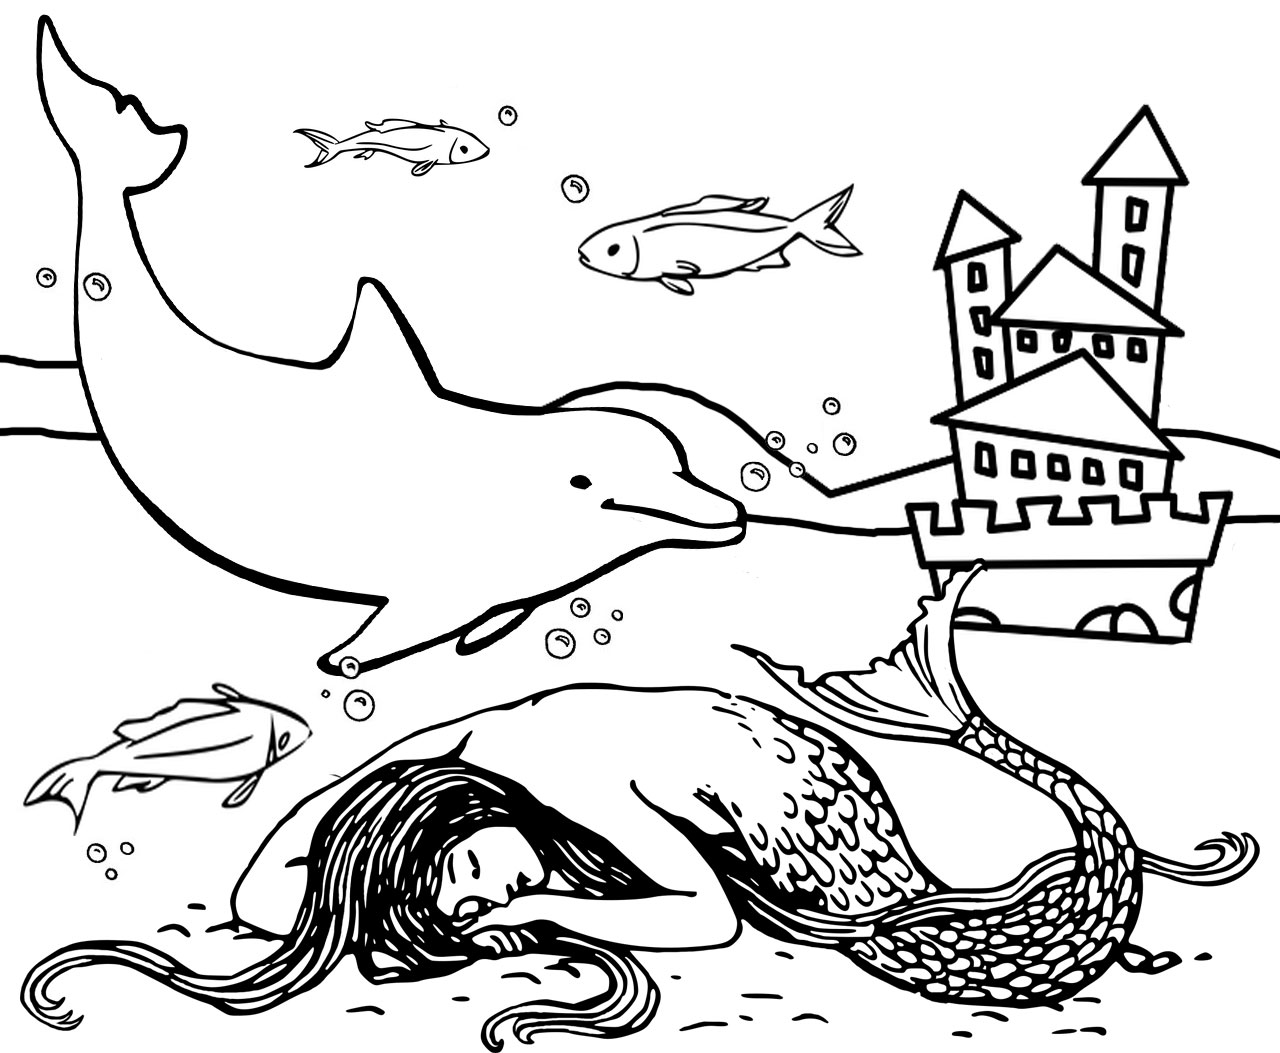 A picture to colour in of a mermaid sleeping in her underwater kingdom, with her castle nearby.